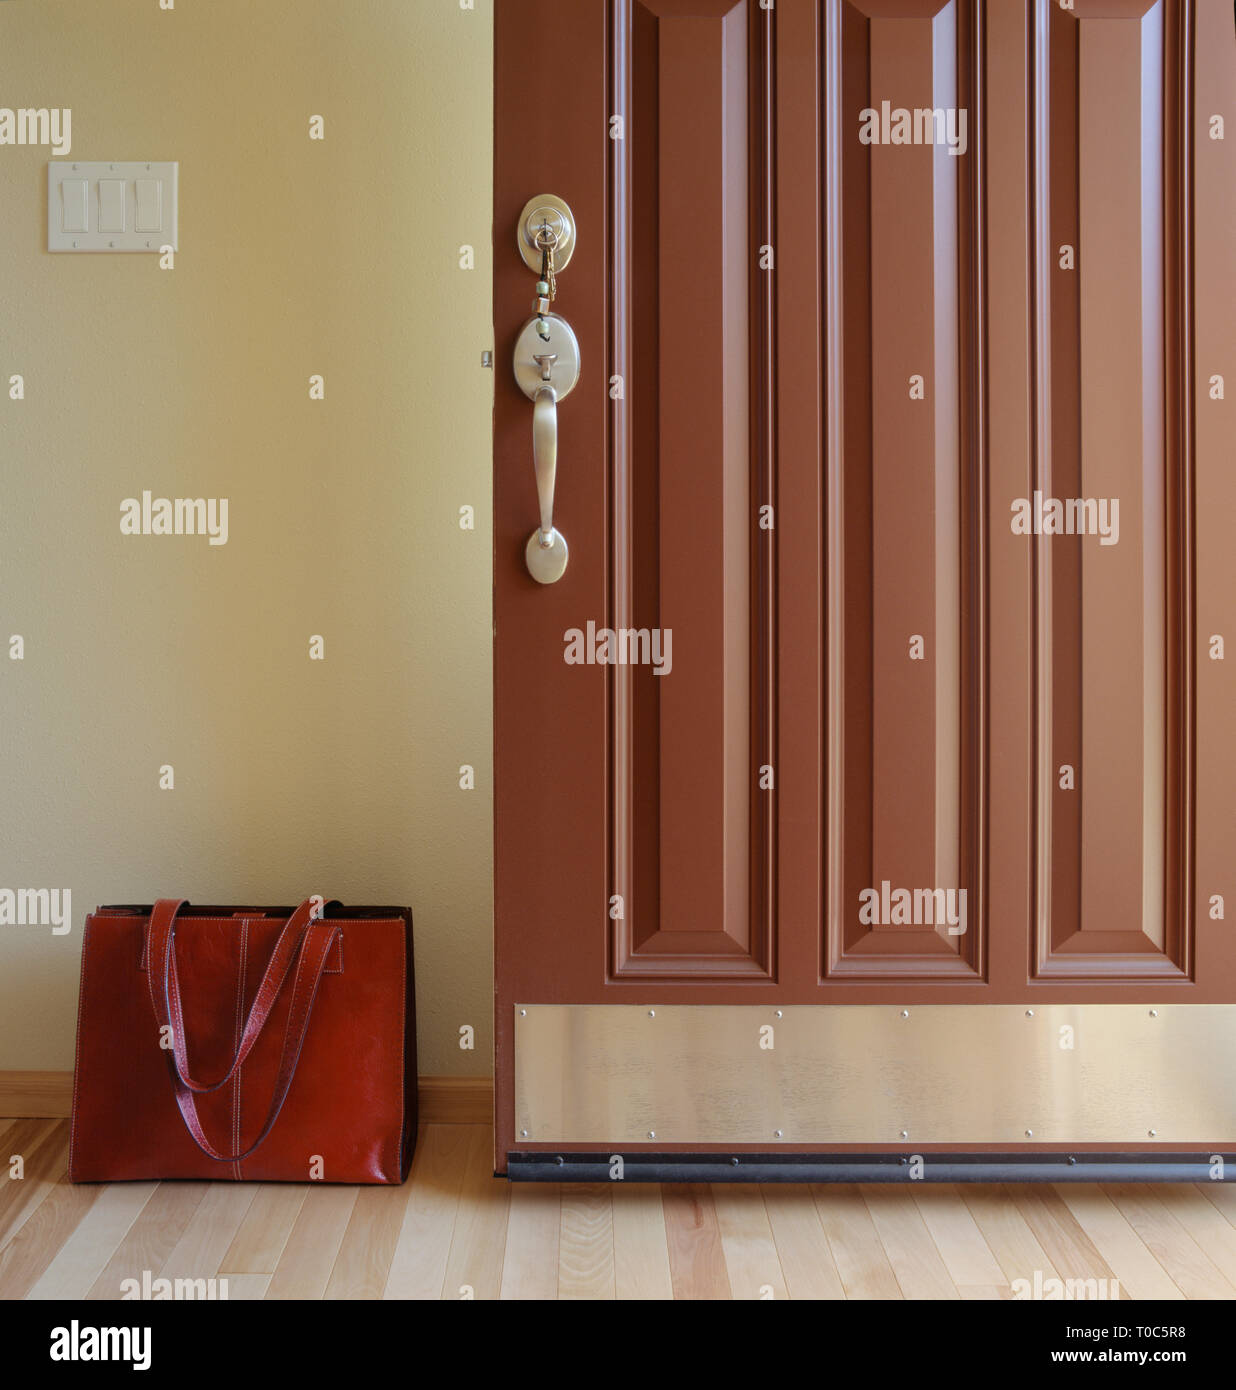 Open front door of house with keys in lock and briefcase brief bag in entry. Coming home from or leaving for work concept. - Stock Image